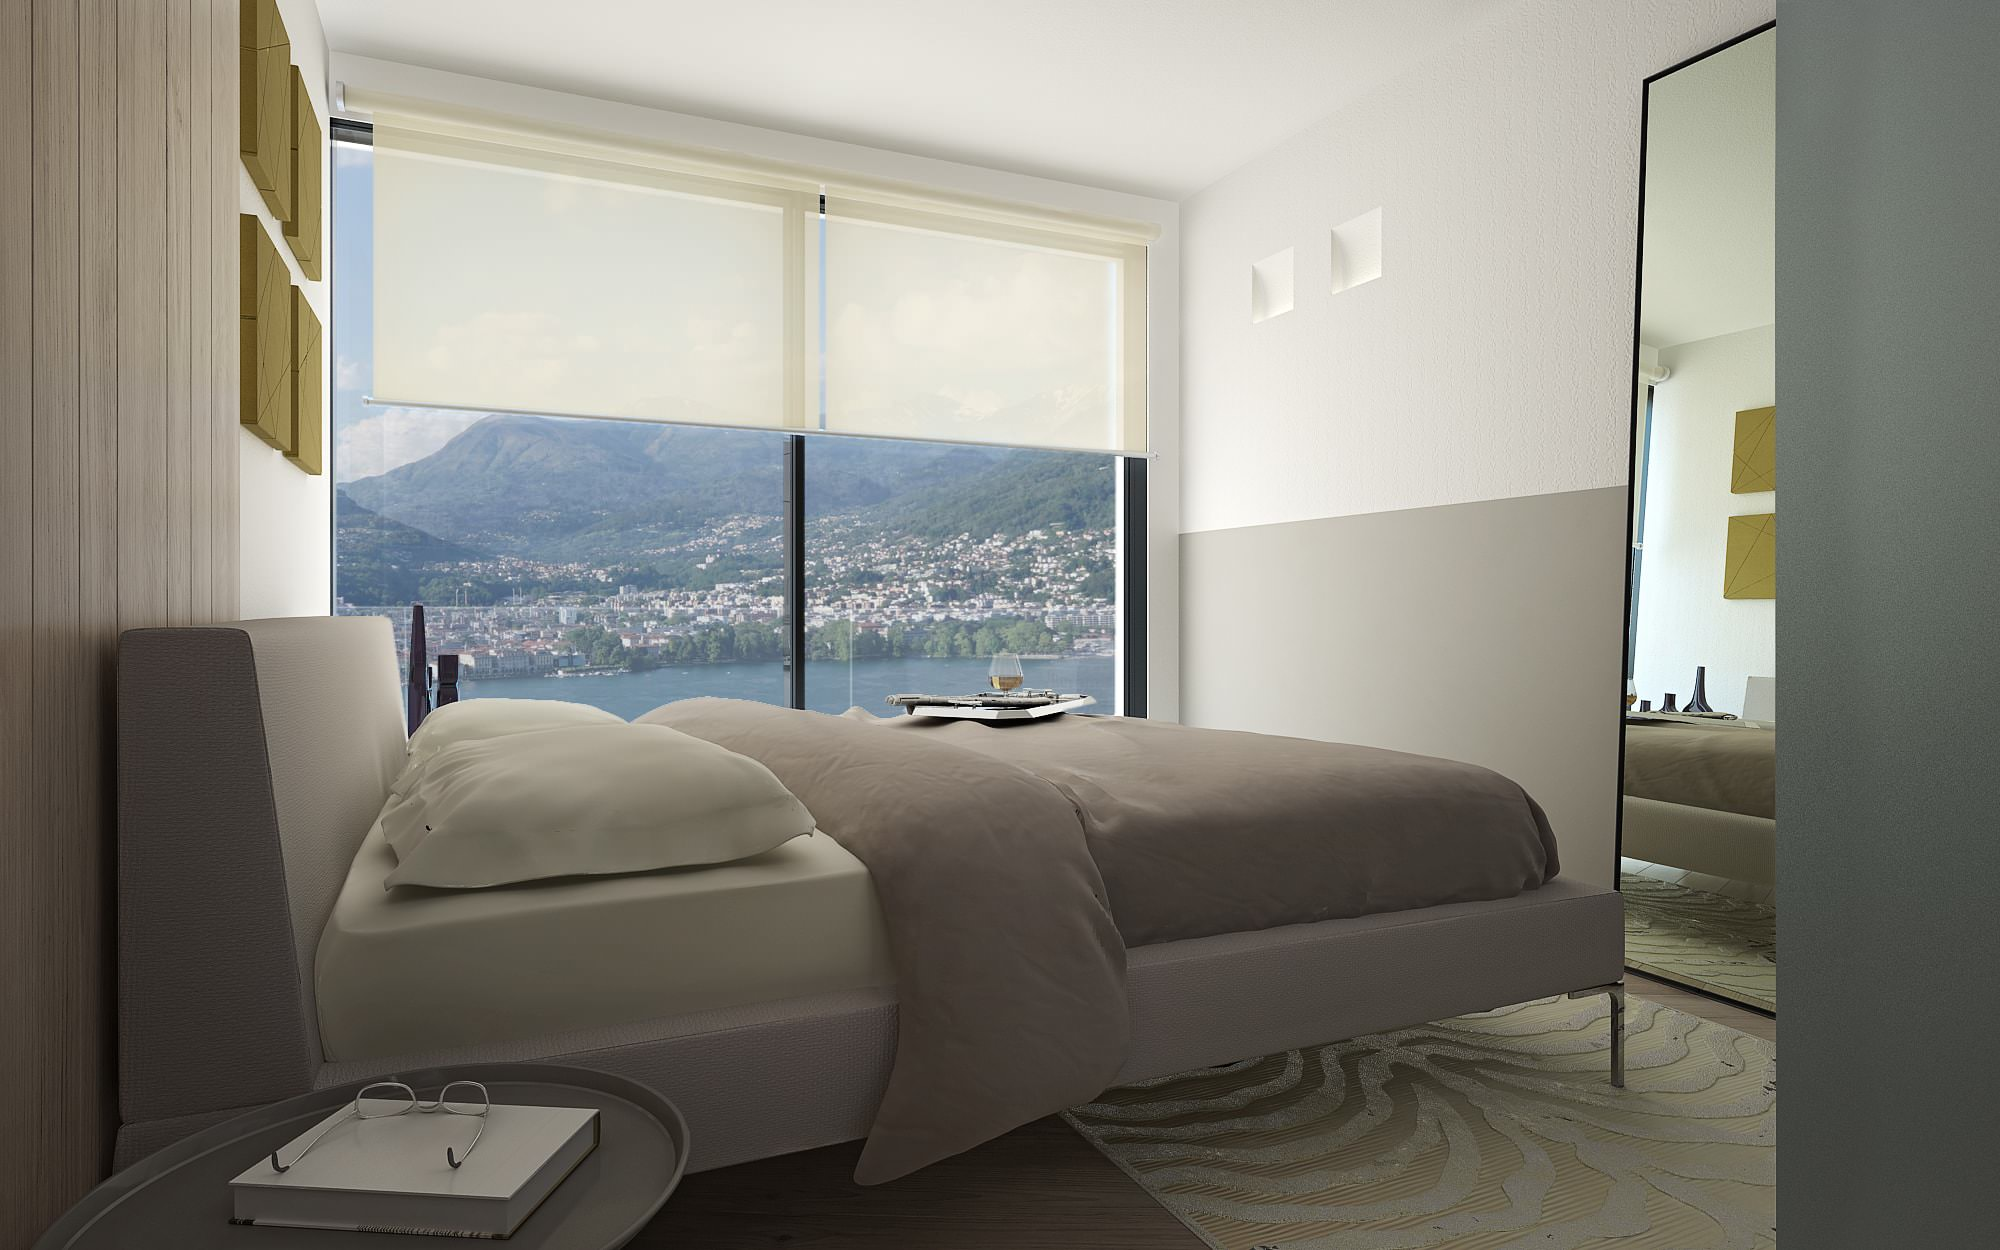 View lake Lugano Lugano bedroom penthouse design Lugano Switzerland Ticino